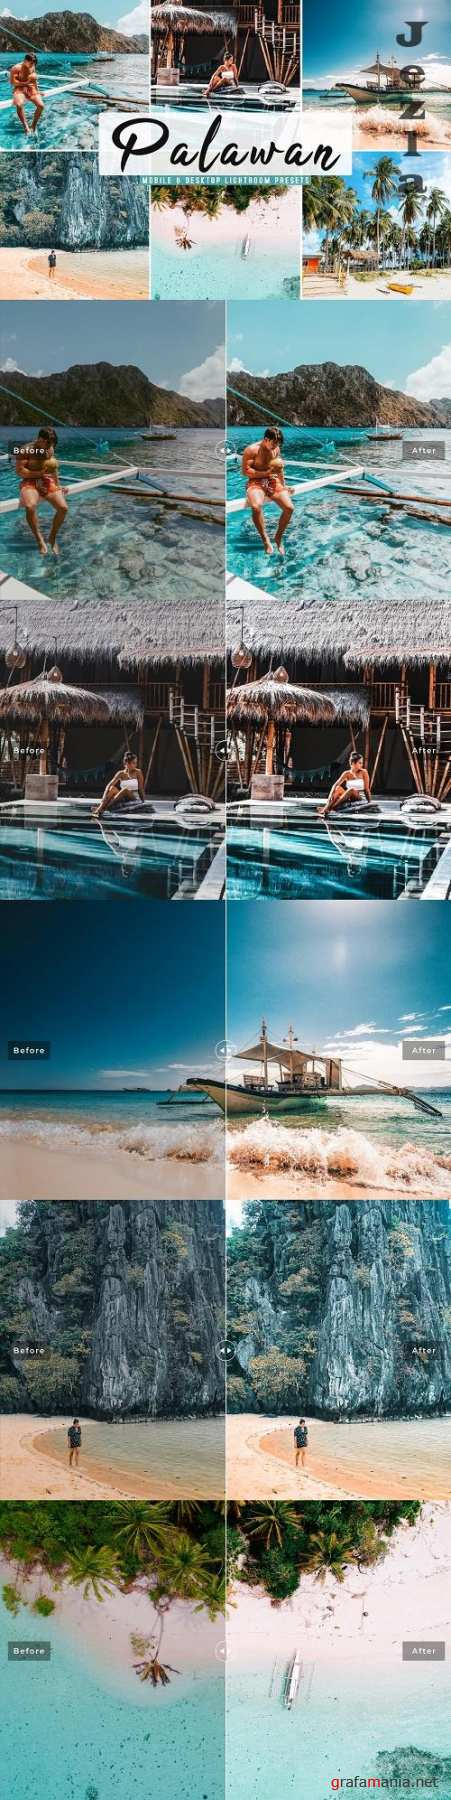 Palawan Lightroom Presets Pack - 4780843 - Mobile & Desktop